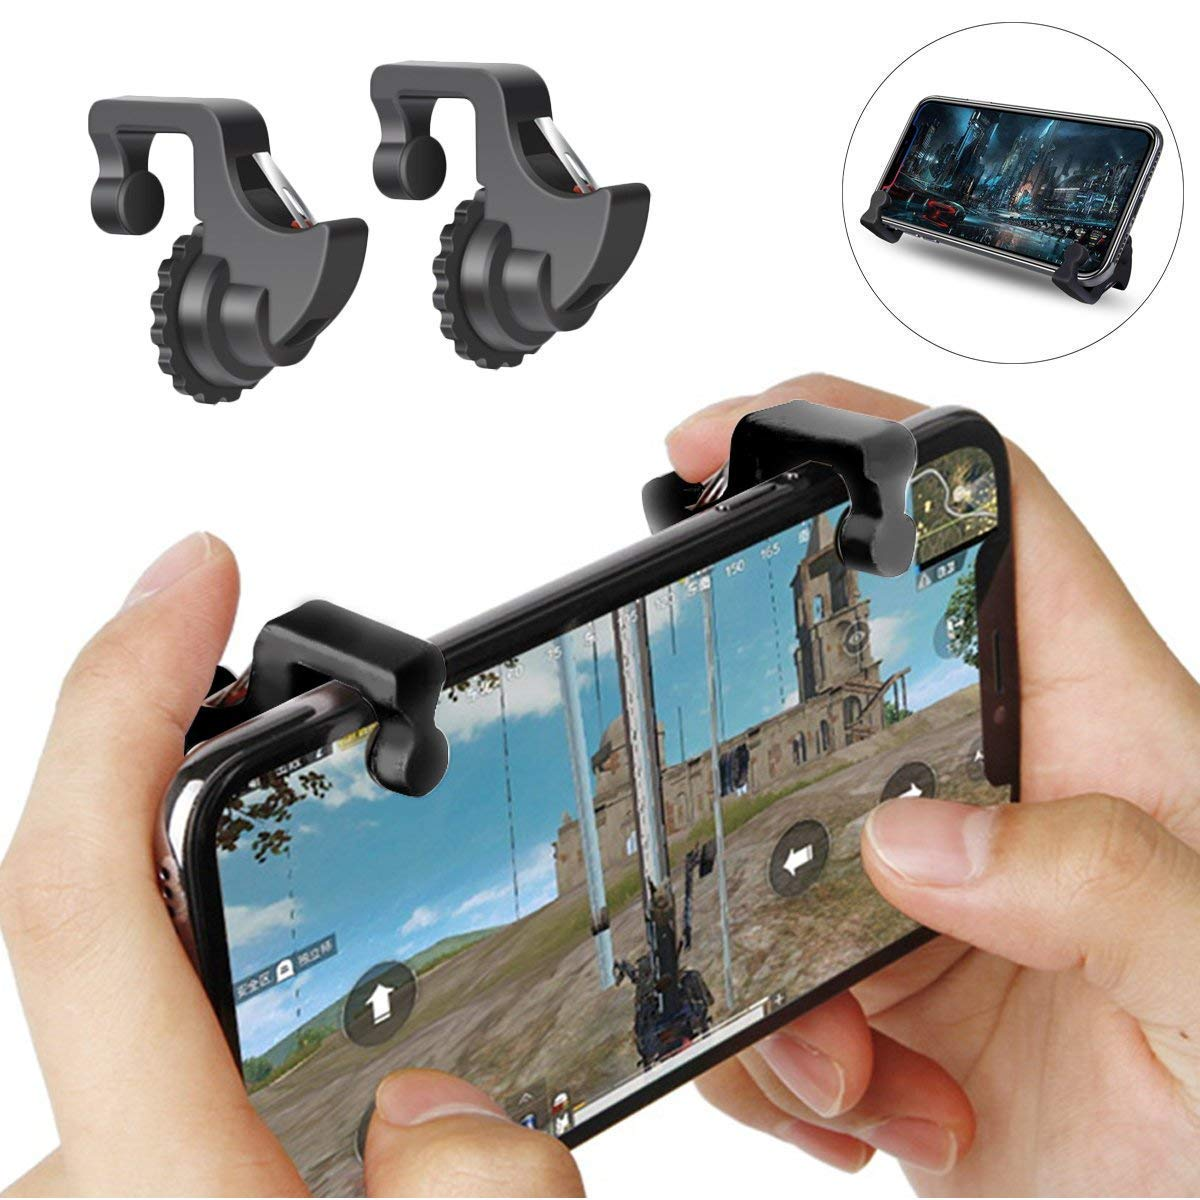 Rednix PUBG Gaming Black Joystick Mobile Trigger for Mobile Controller, Fire Button Assist Tool Smartphone L1R1 Trigger.